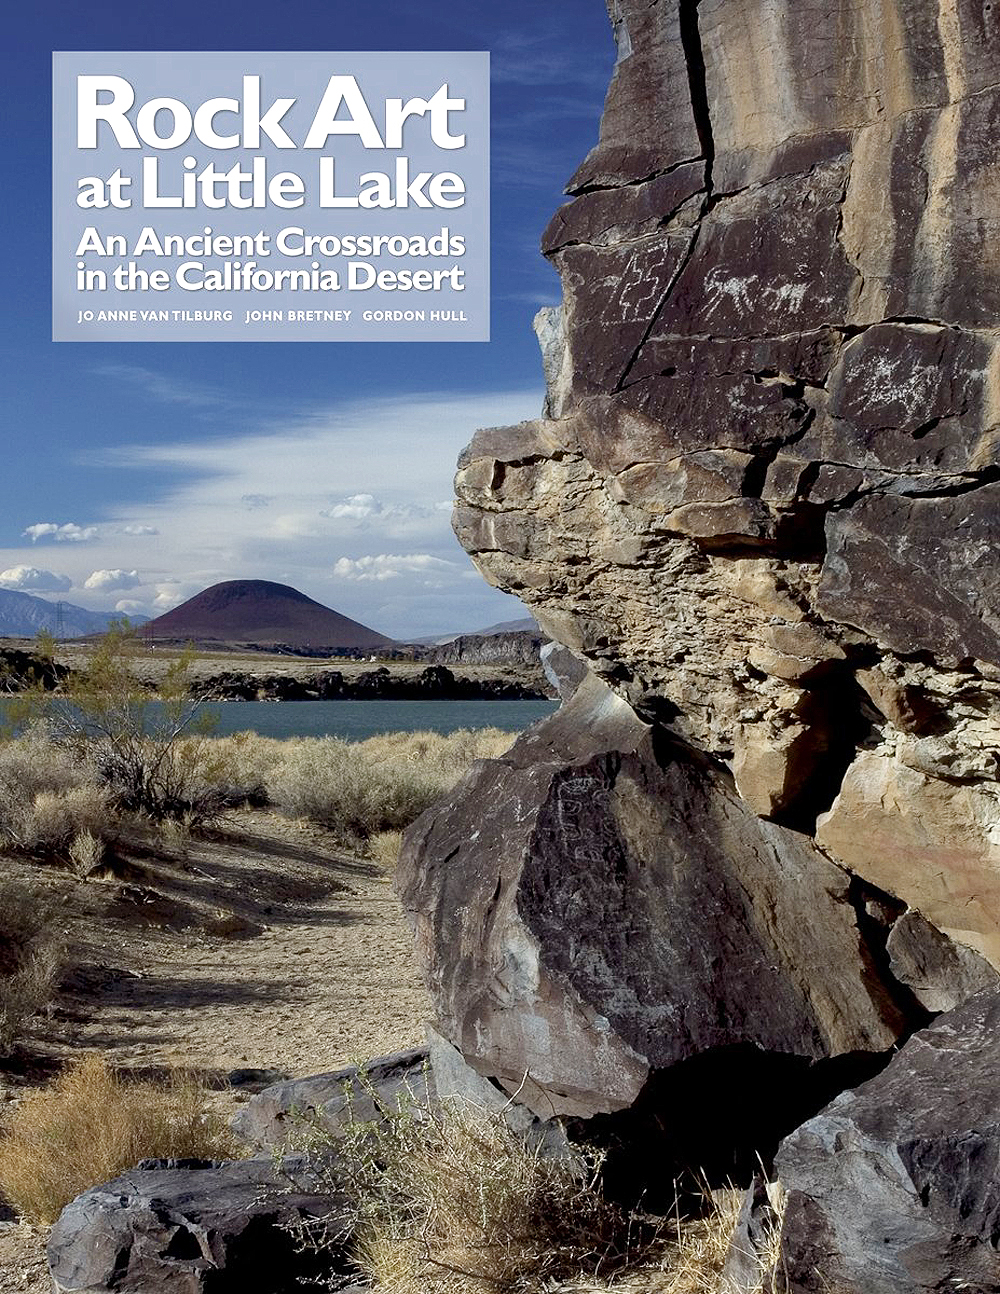 Rock Art at Little Lake: An Ancient Crossroads in the California Desert.